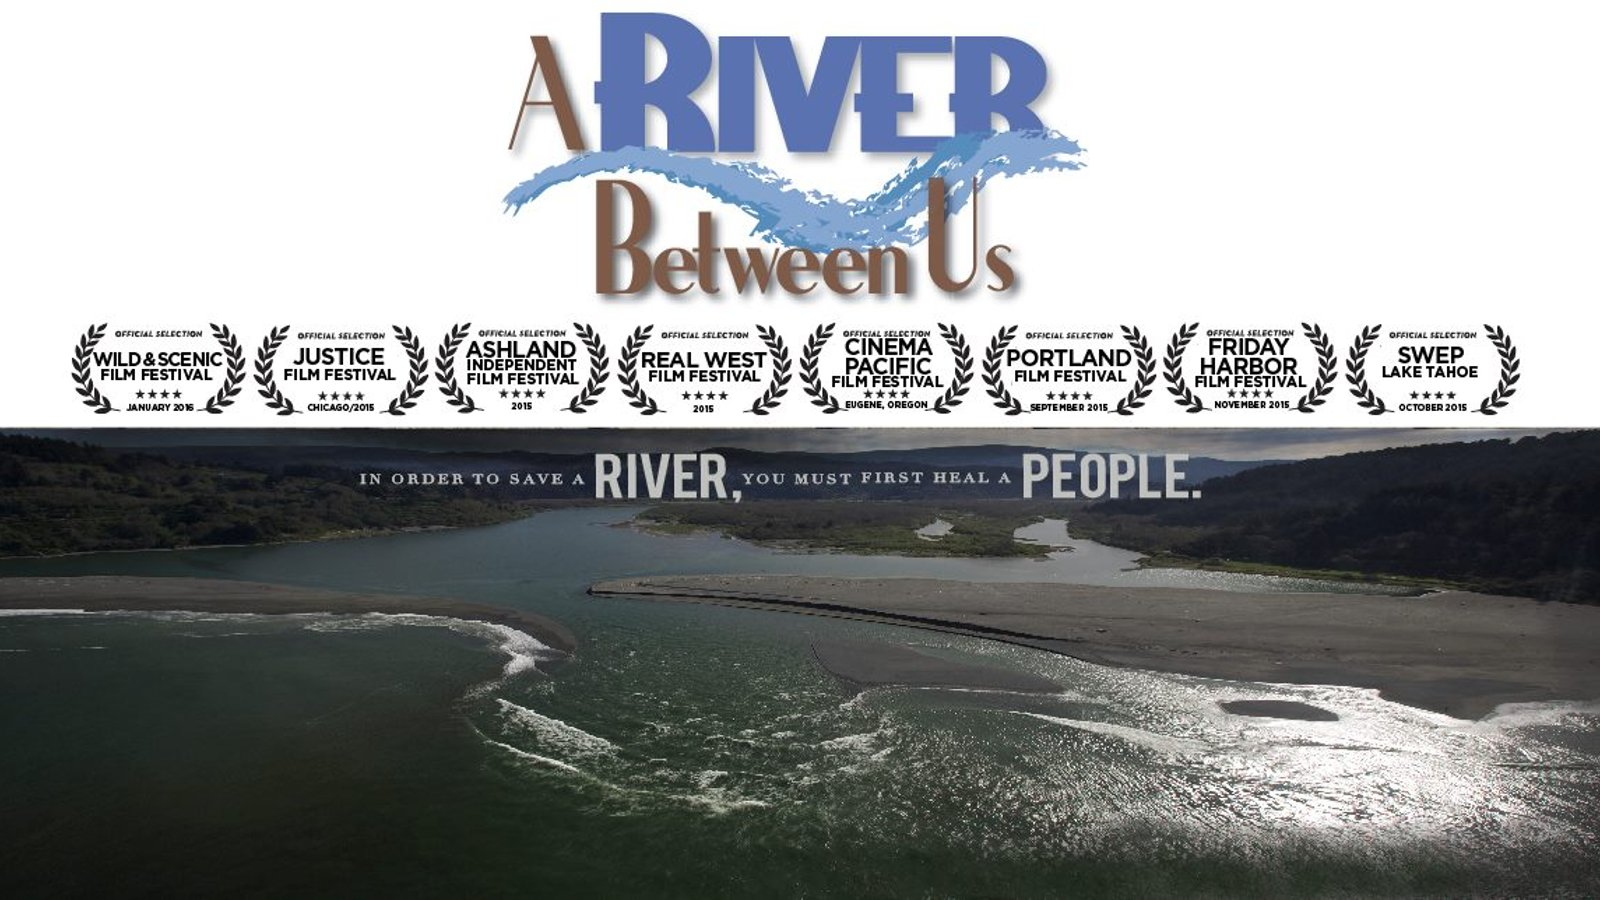 A River Between Us - The Struggle for Justice on the Klamath River